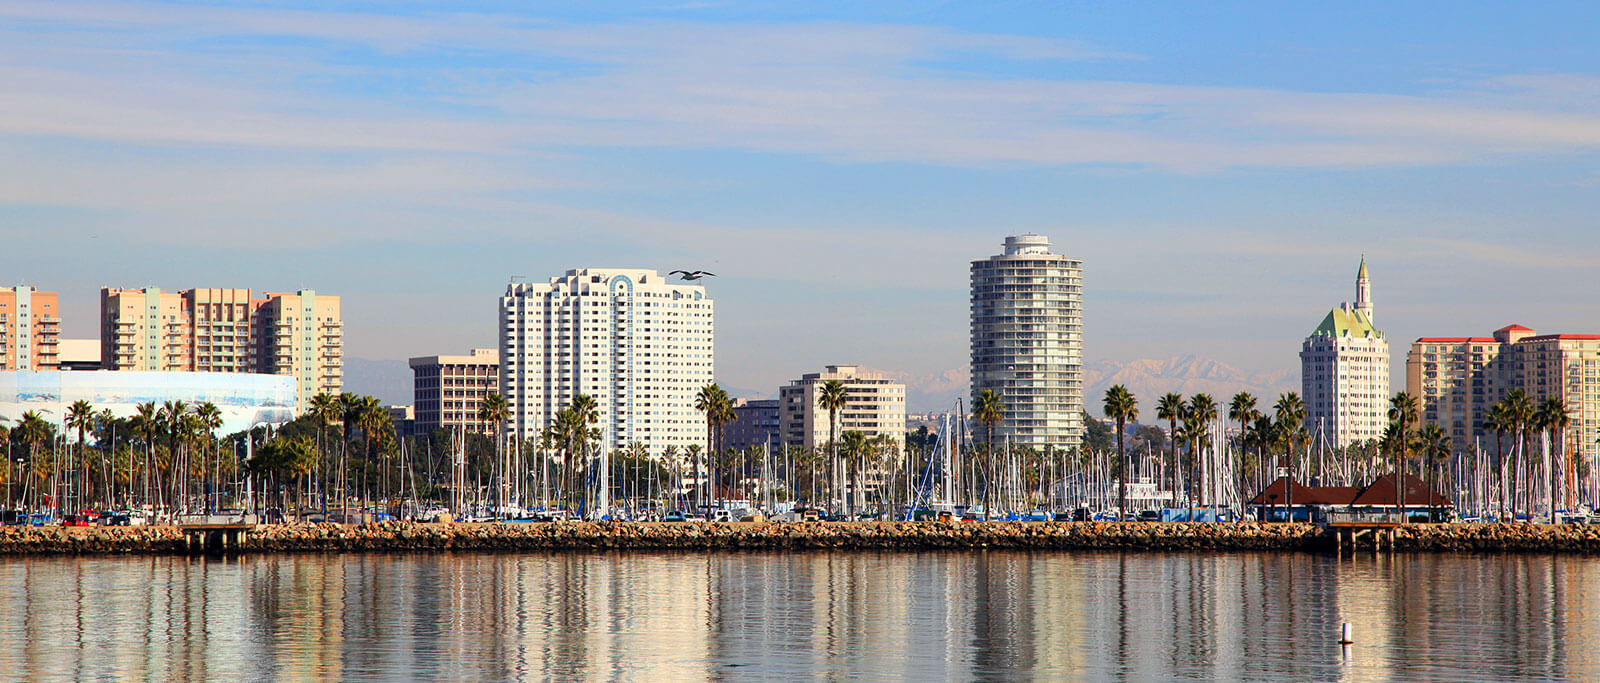 Whether you are in long beach for business or vacation, take time to. Bus To Long Beach Ca From 5 99 Flixbus The New Way To Travel